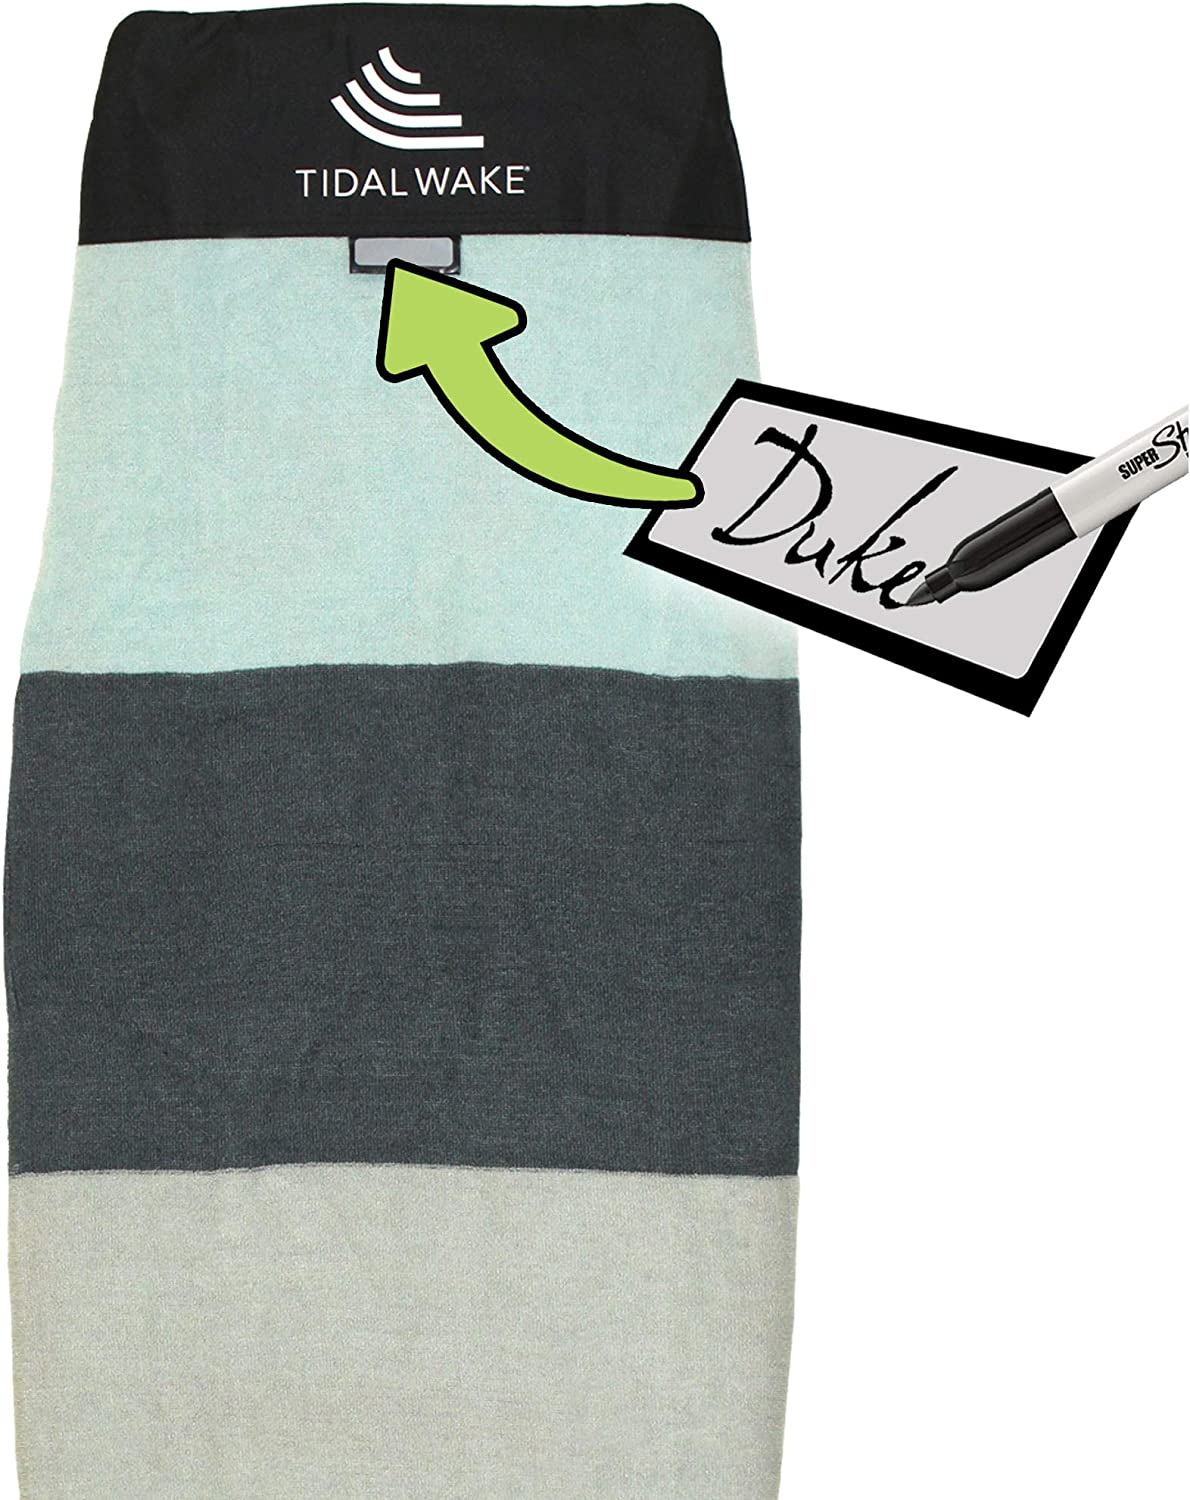 Tidal Wake TAG-IT Snub Nose Surf Sock with Directly managed store Buil Board Bag Max 57% OFF